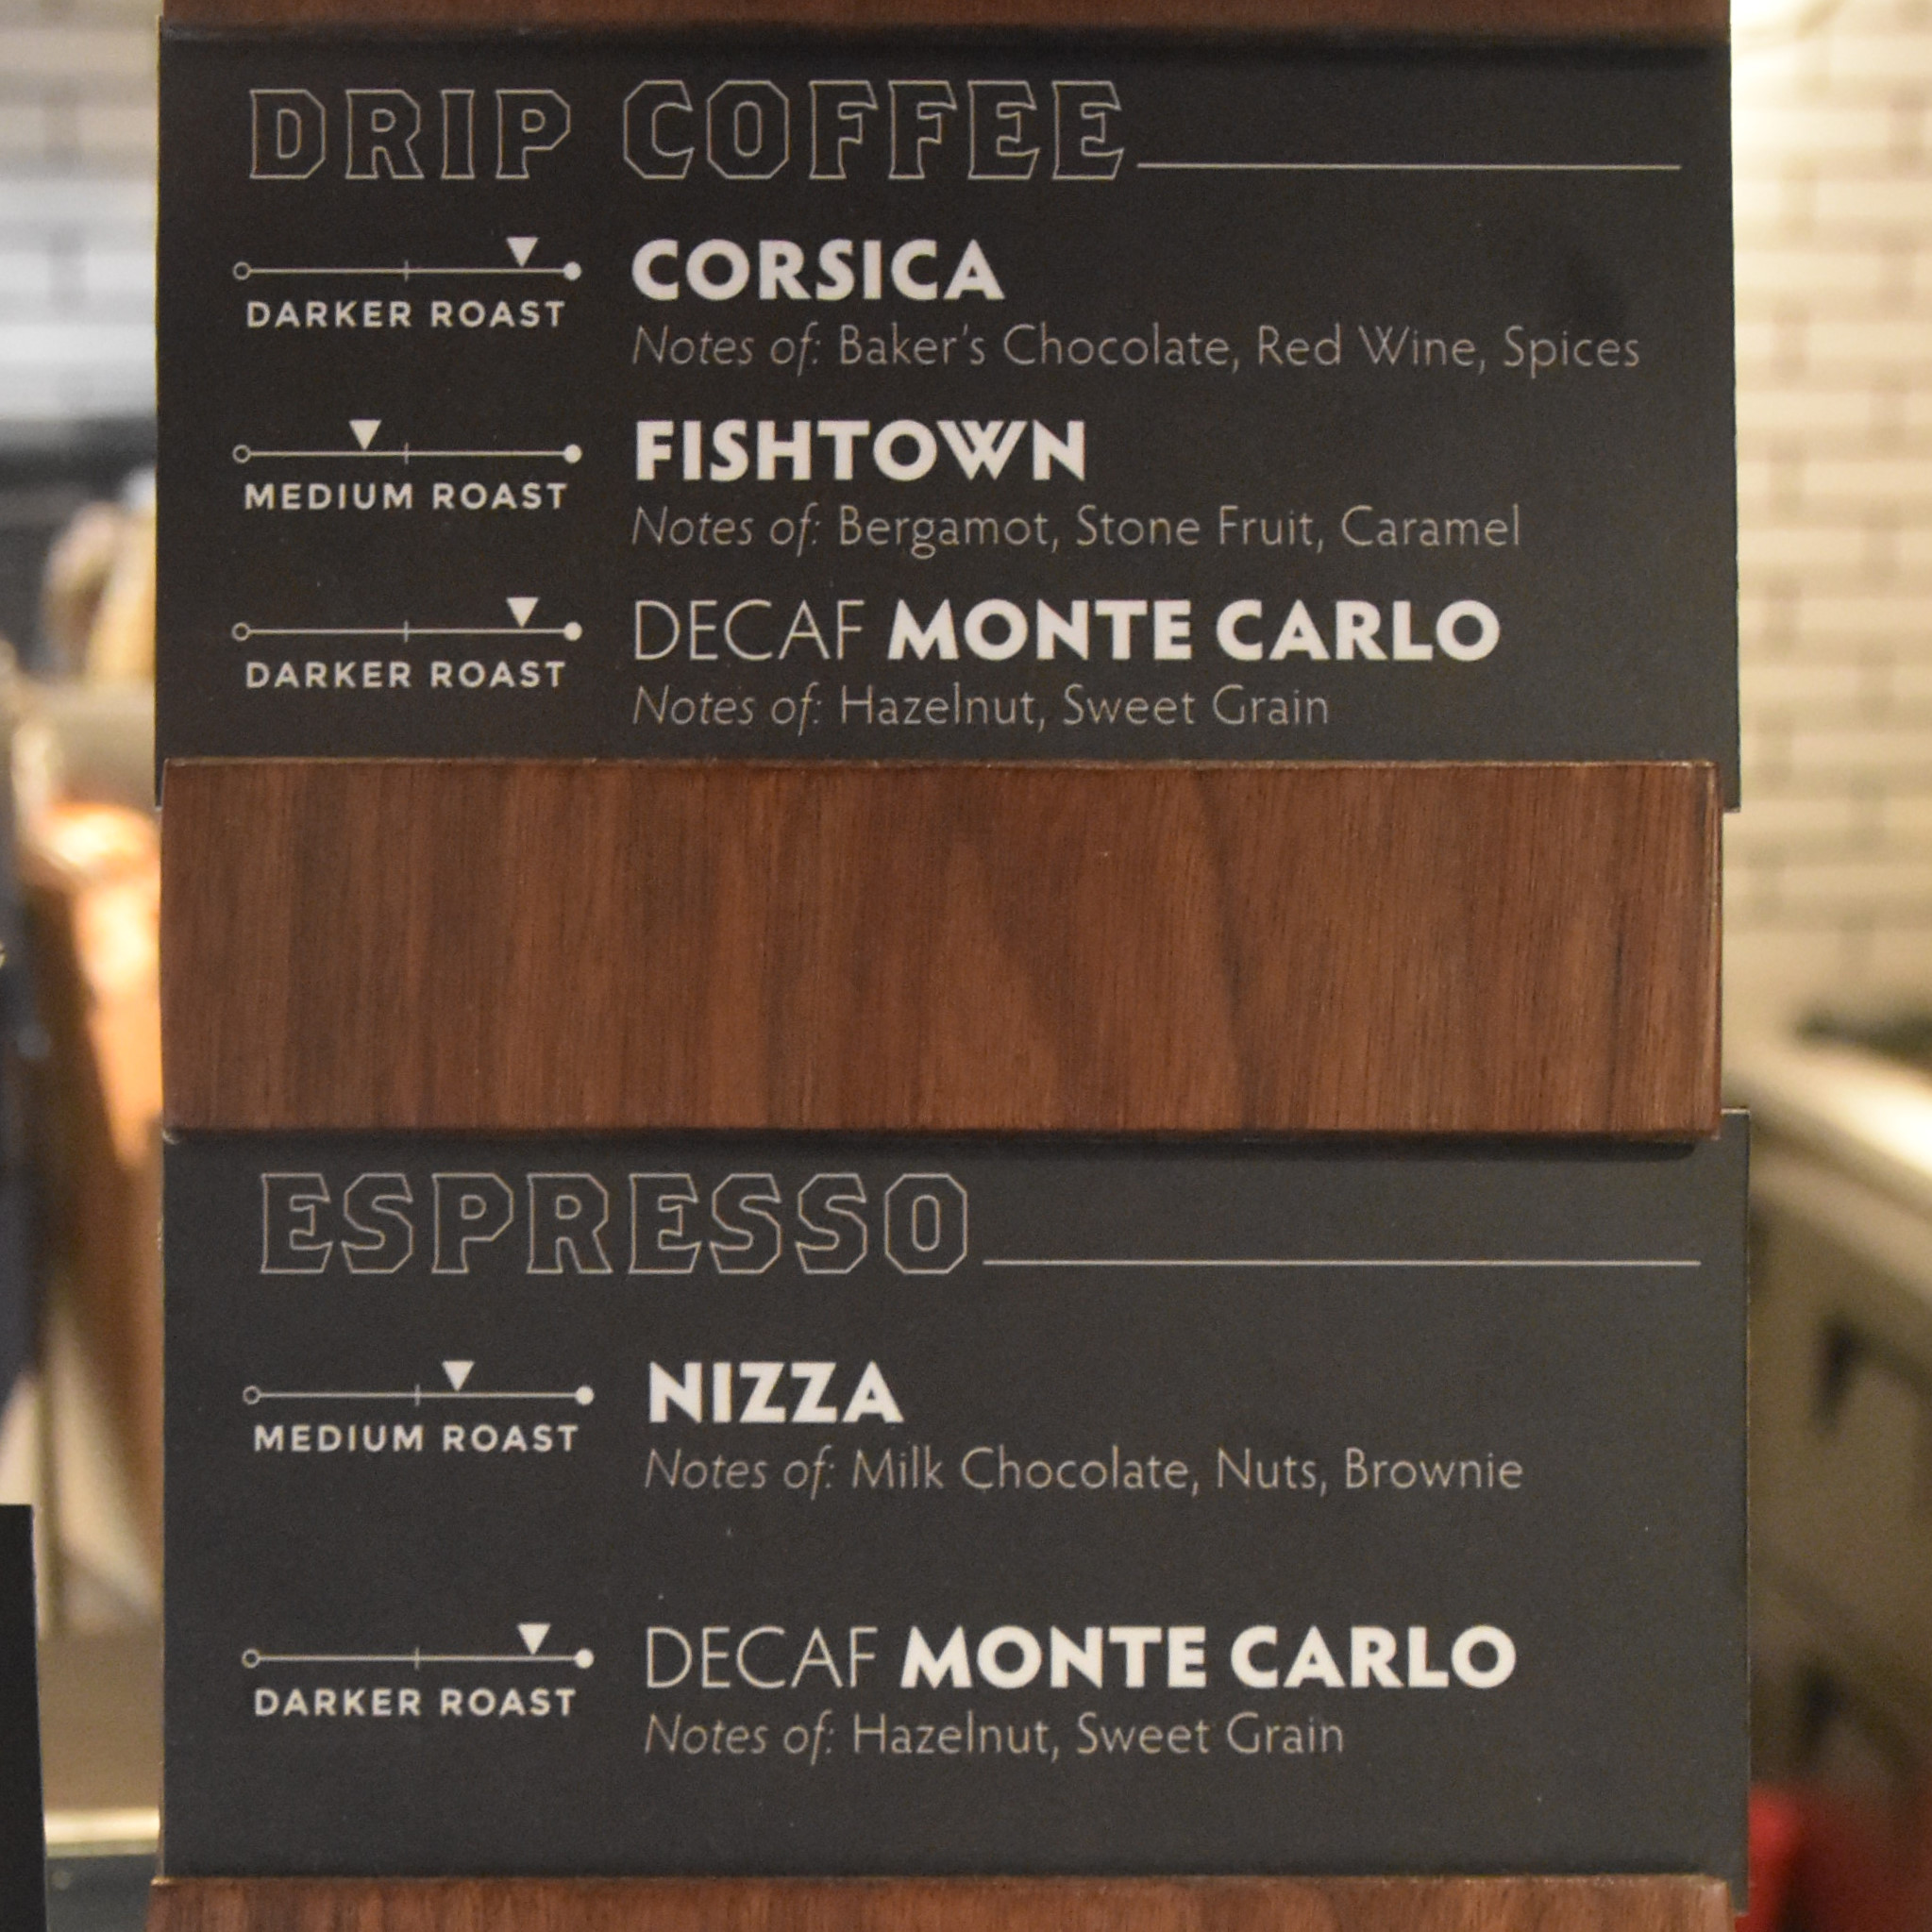 Details of the drip and espresso coffee at La Colombe, Philadelphia Airport